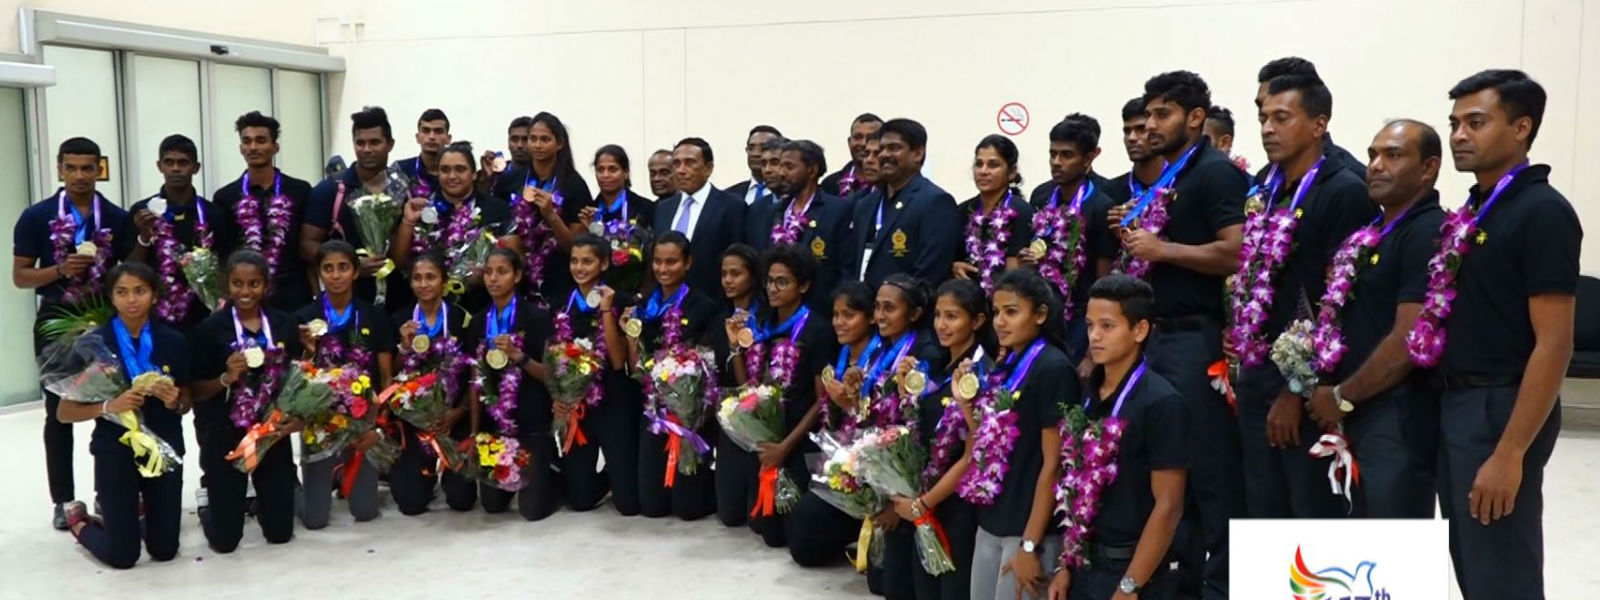 Sri Lanka defeats India in athletics SAG 2019